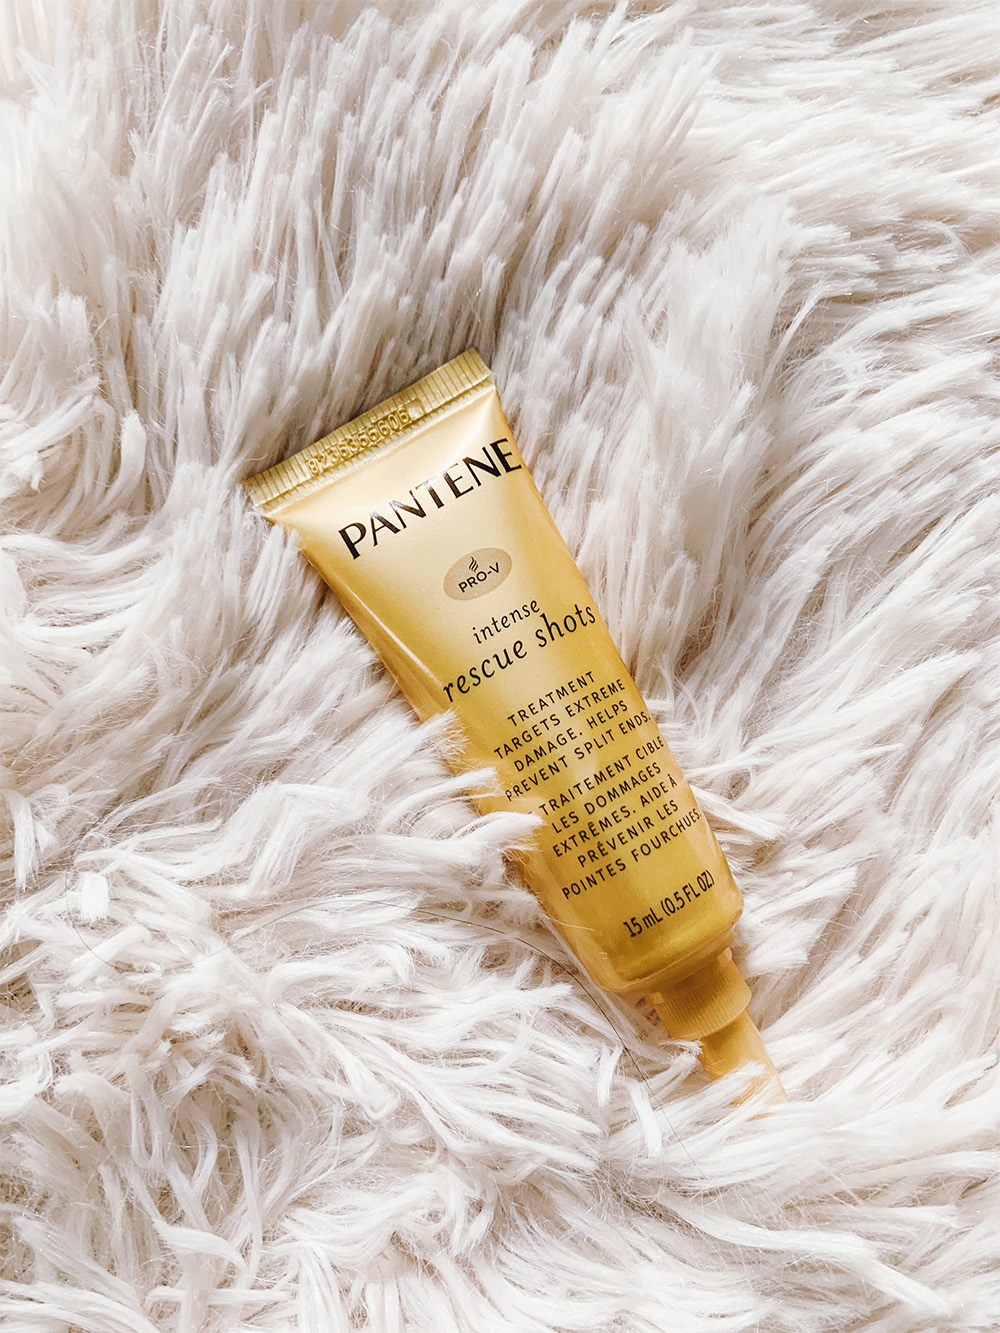 How to Repair Damaged Hair with Pantene Intense Rescue Shots